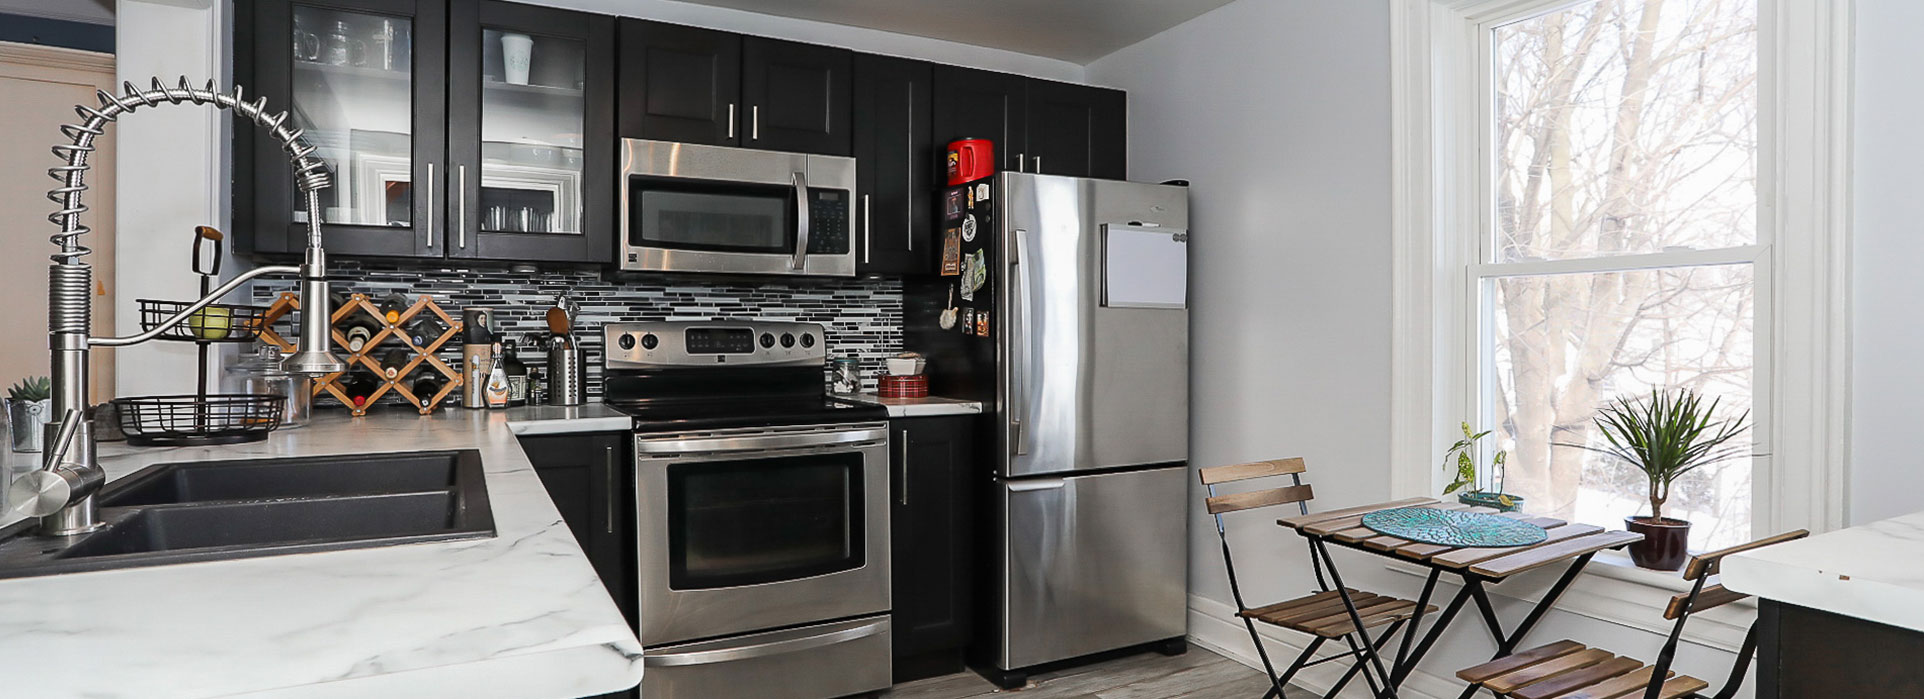 7 Thompson Street - Kitchen with stainless steel appliances - Cripps Realty